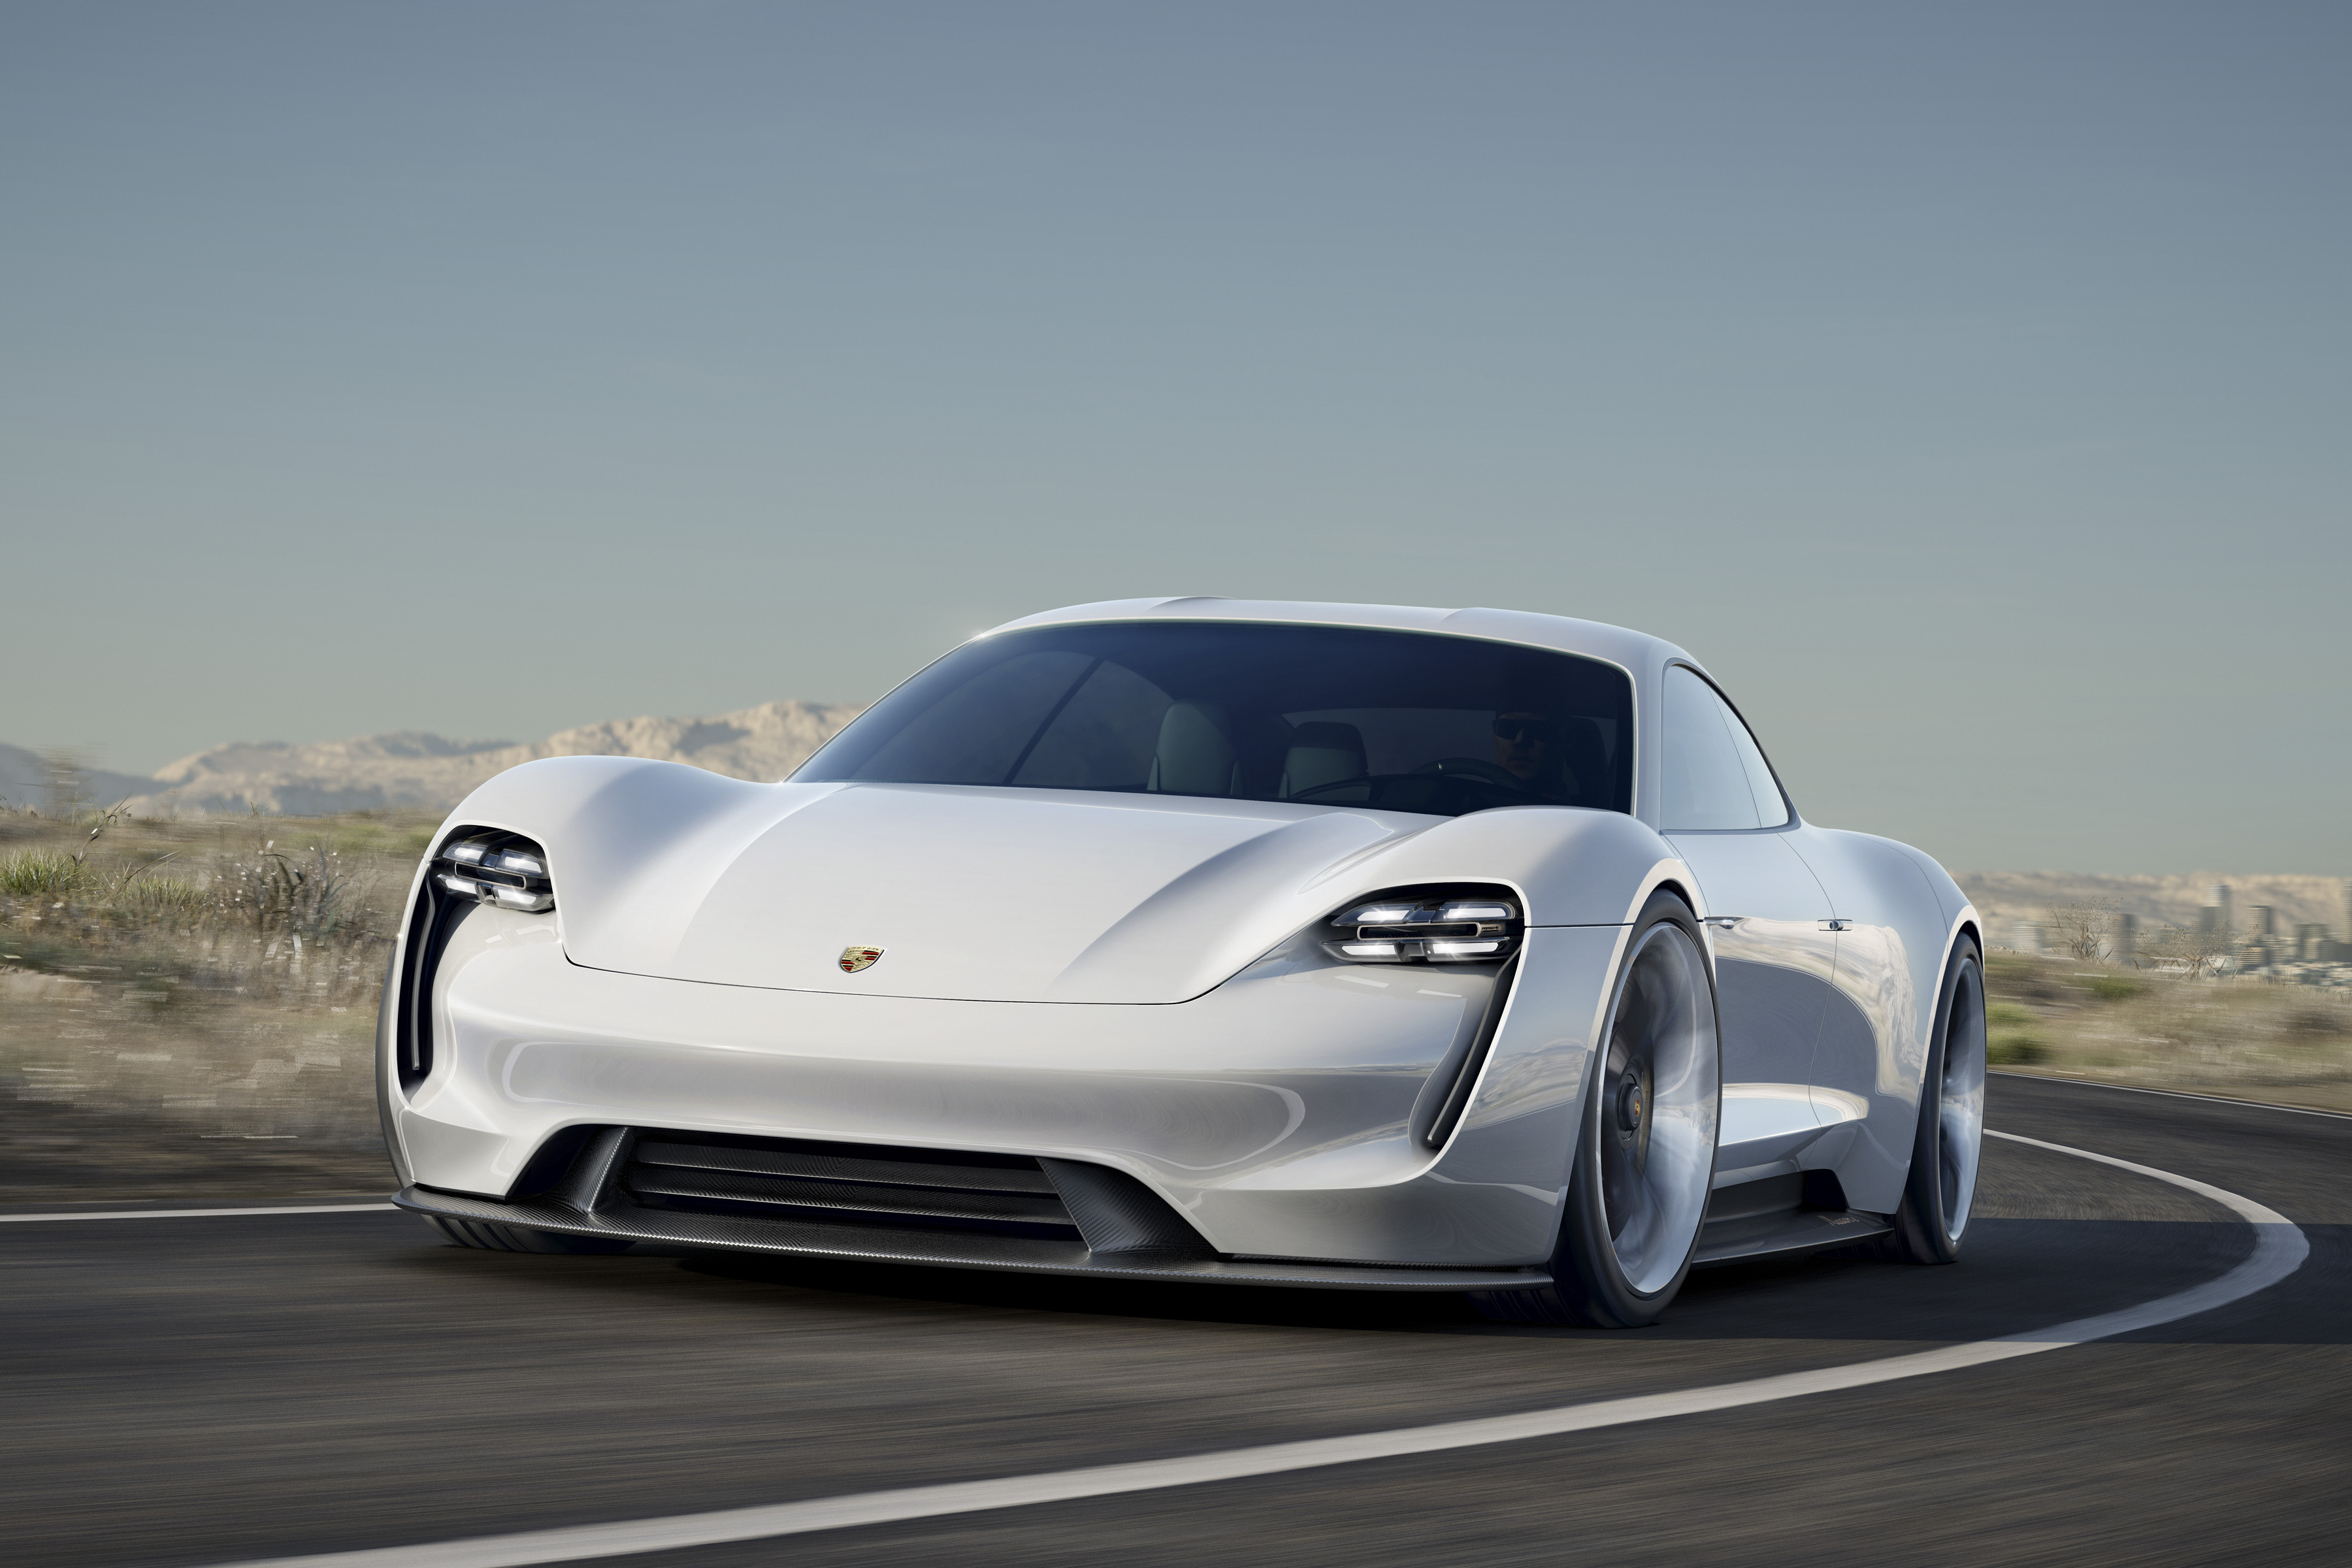 Porsche S Electric Mission E Arrives In 2019 Priced Like Panamera Techcrunch